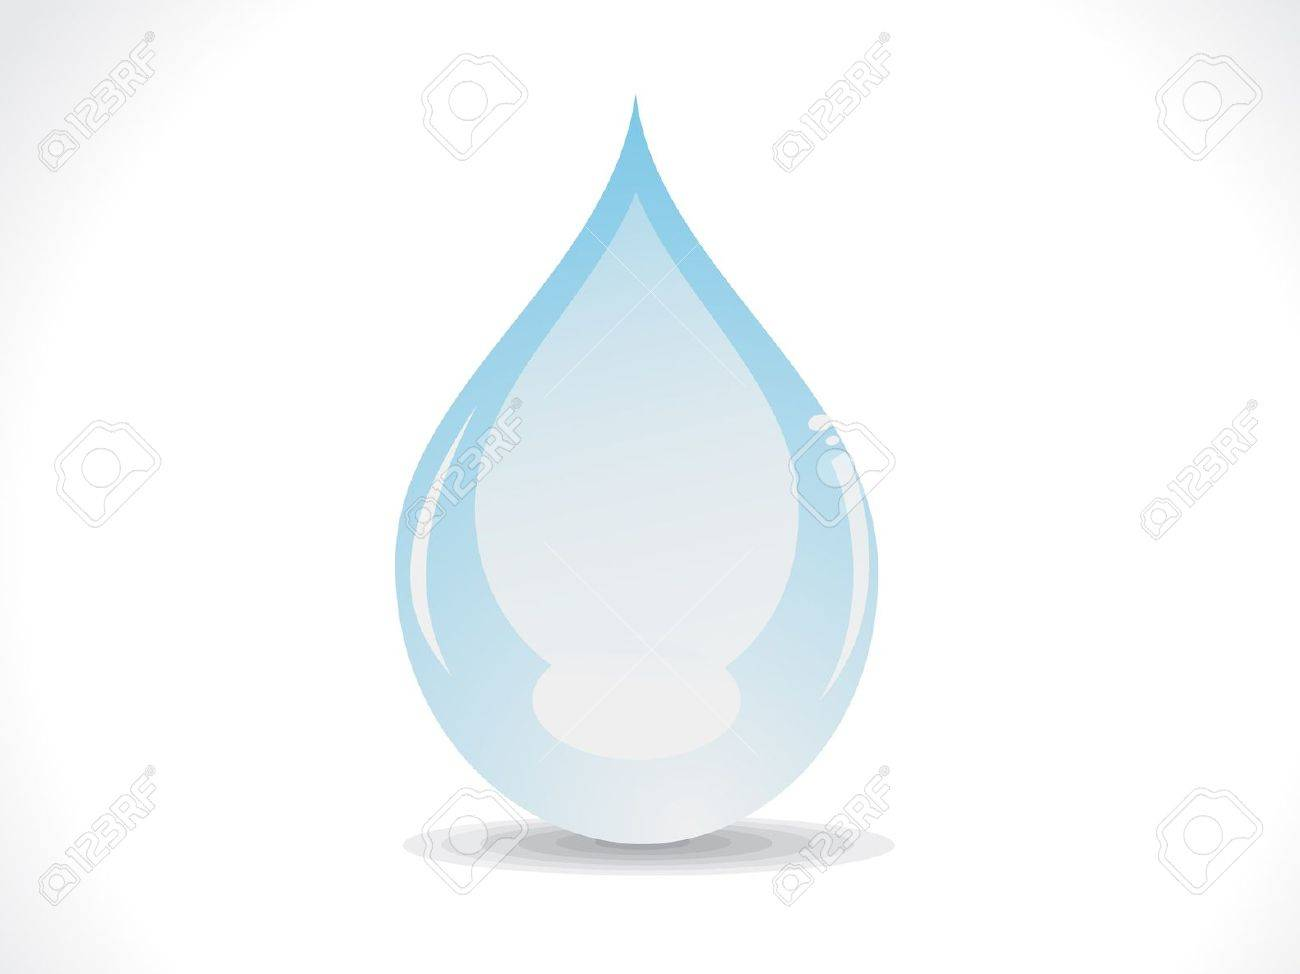 abstract glossy water drop vector illustration - 11864568